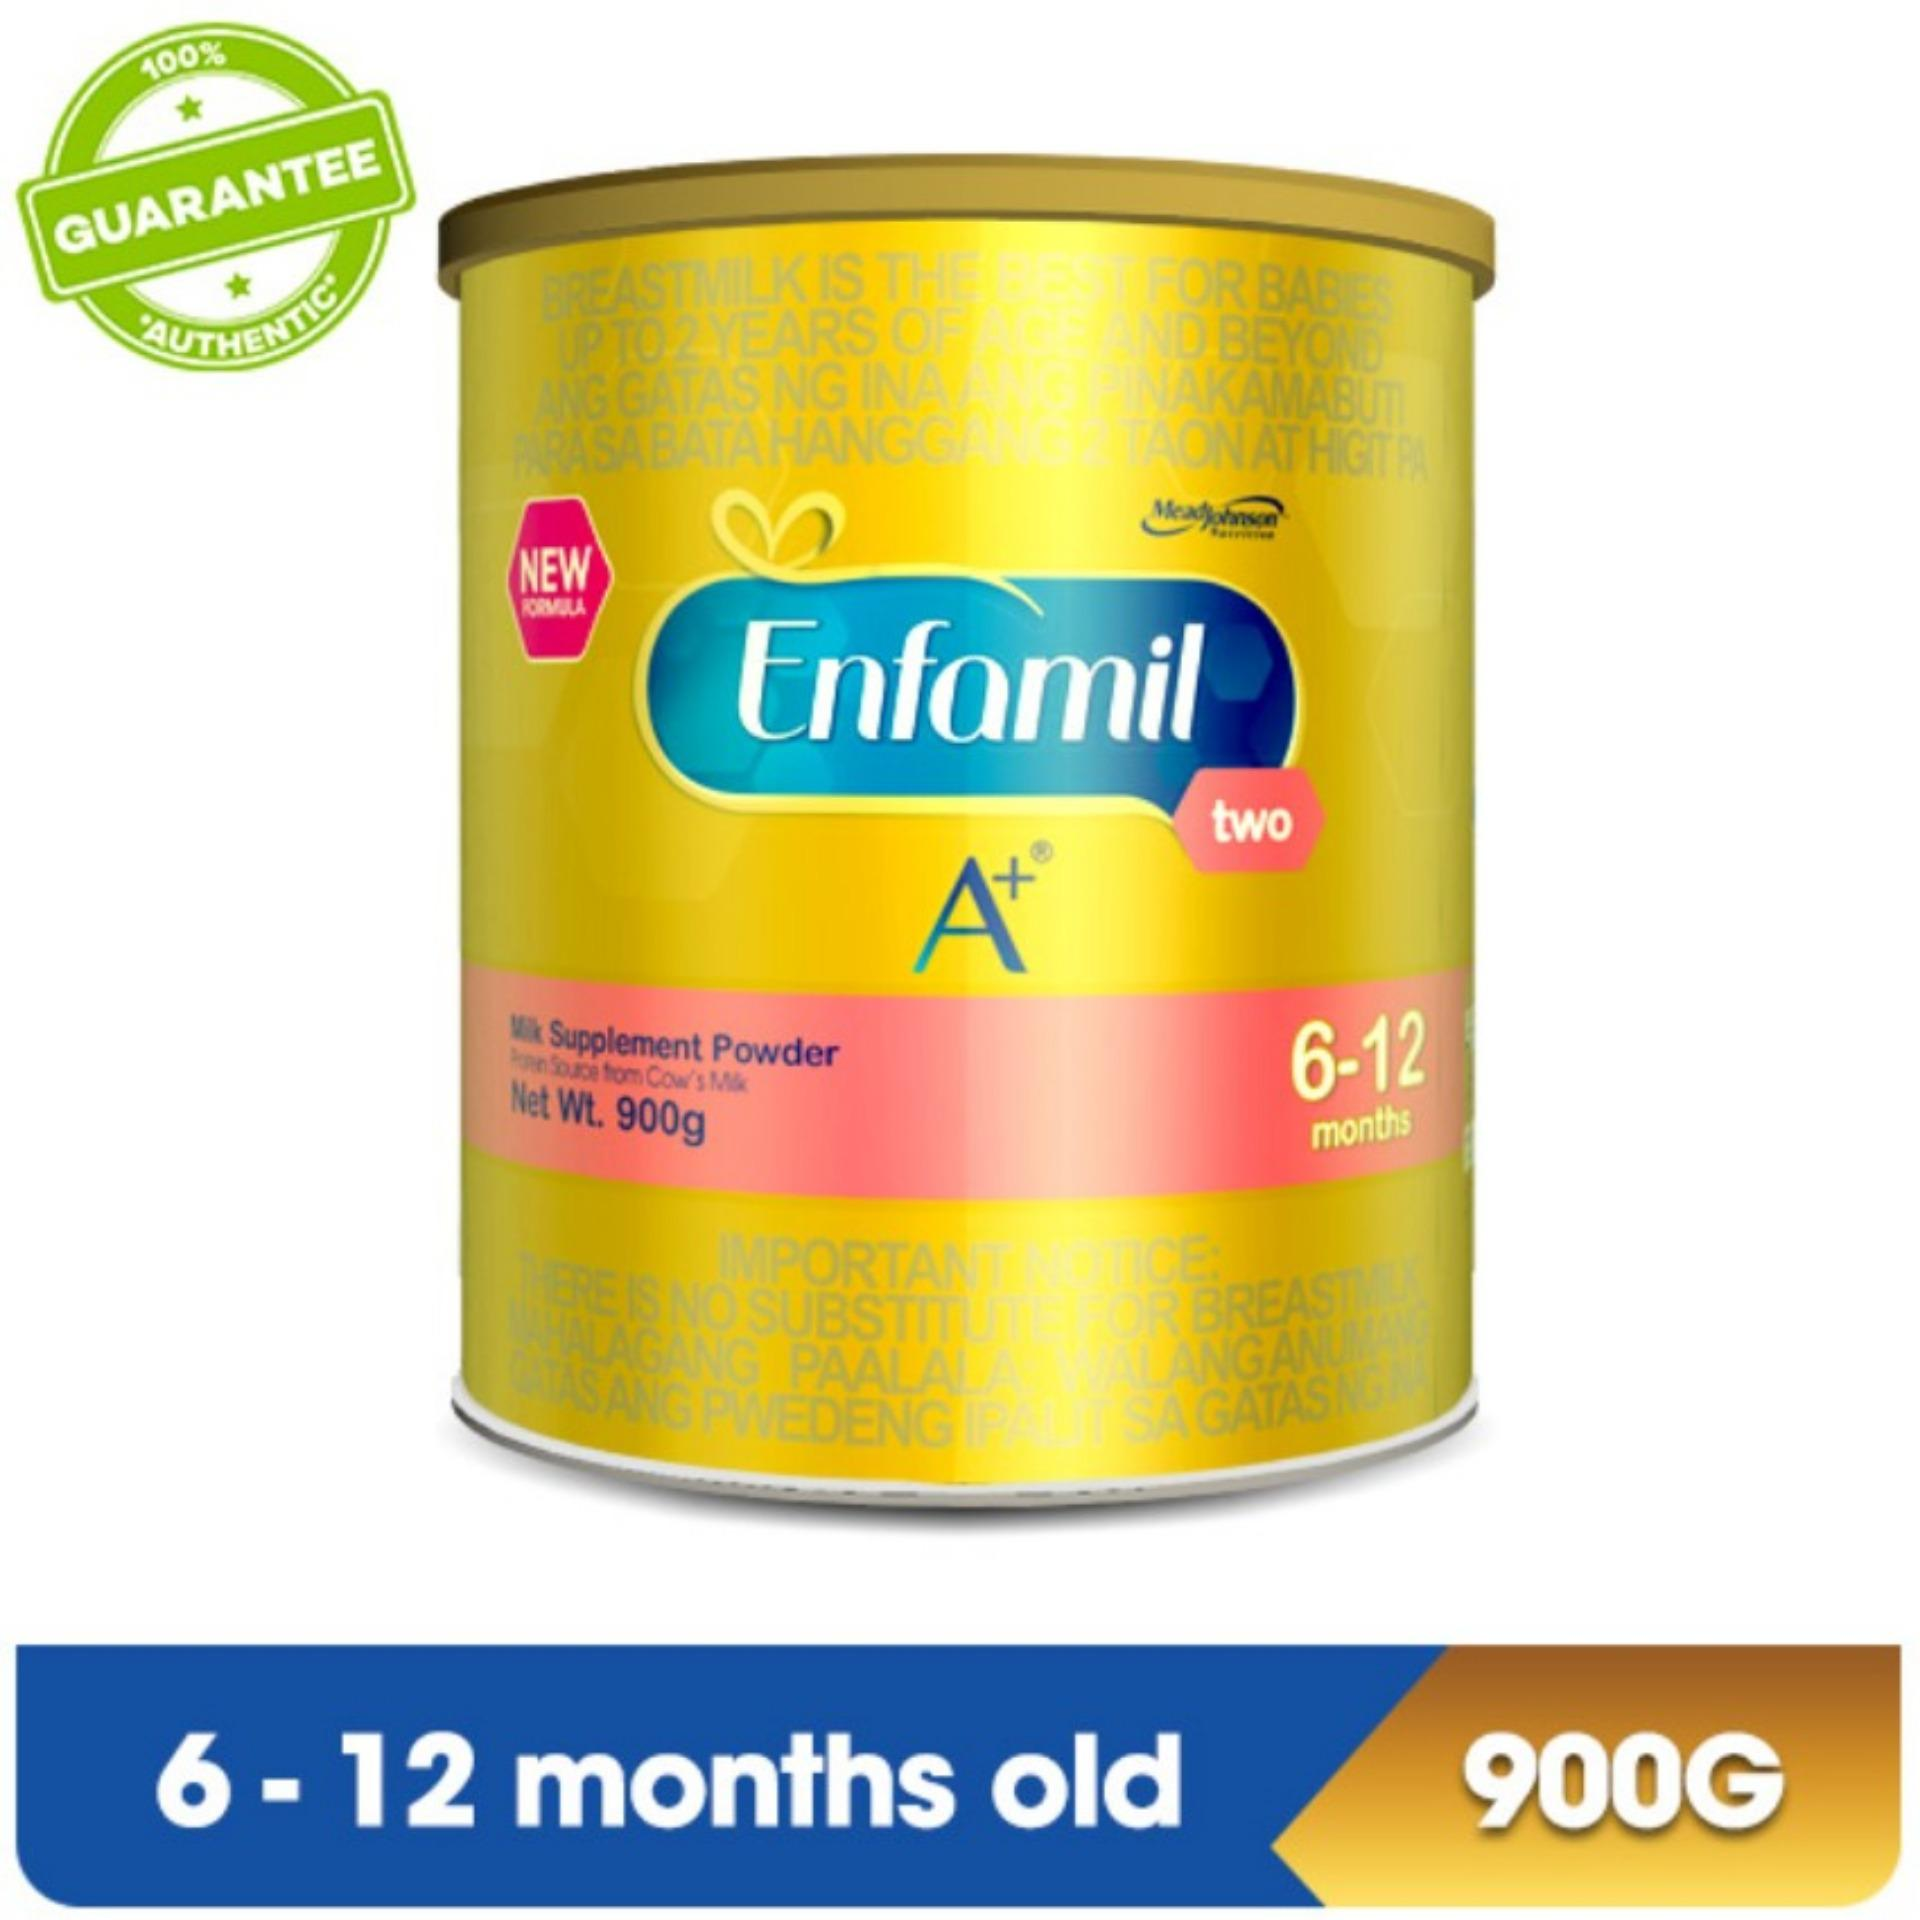 Enfamil Philippines Price List Infant Milk Formula For S26 Promise Gold 900gr Paket 8 Karton A Two Supplement Powder 6 12 Months 900g